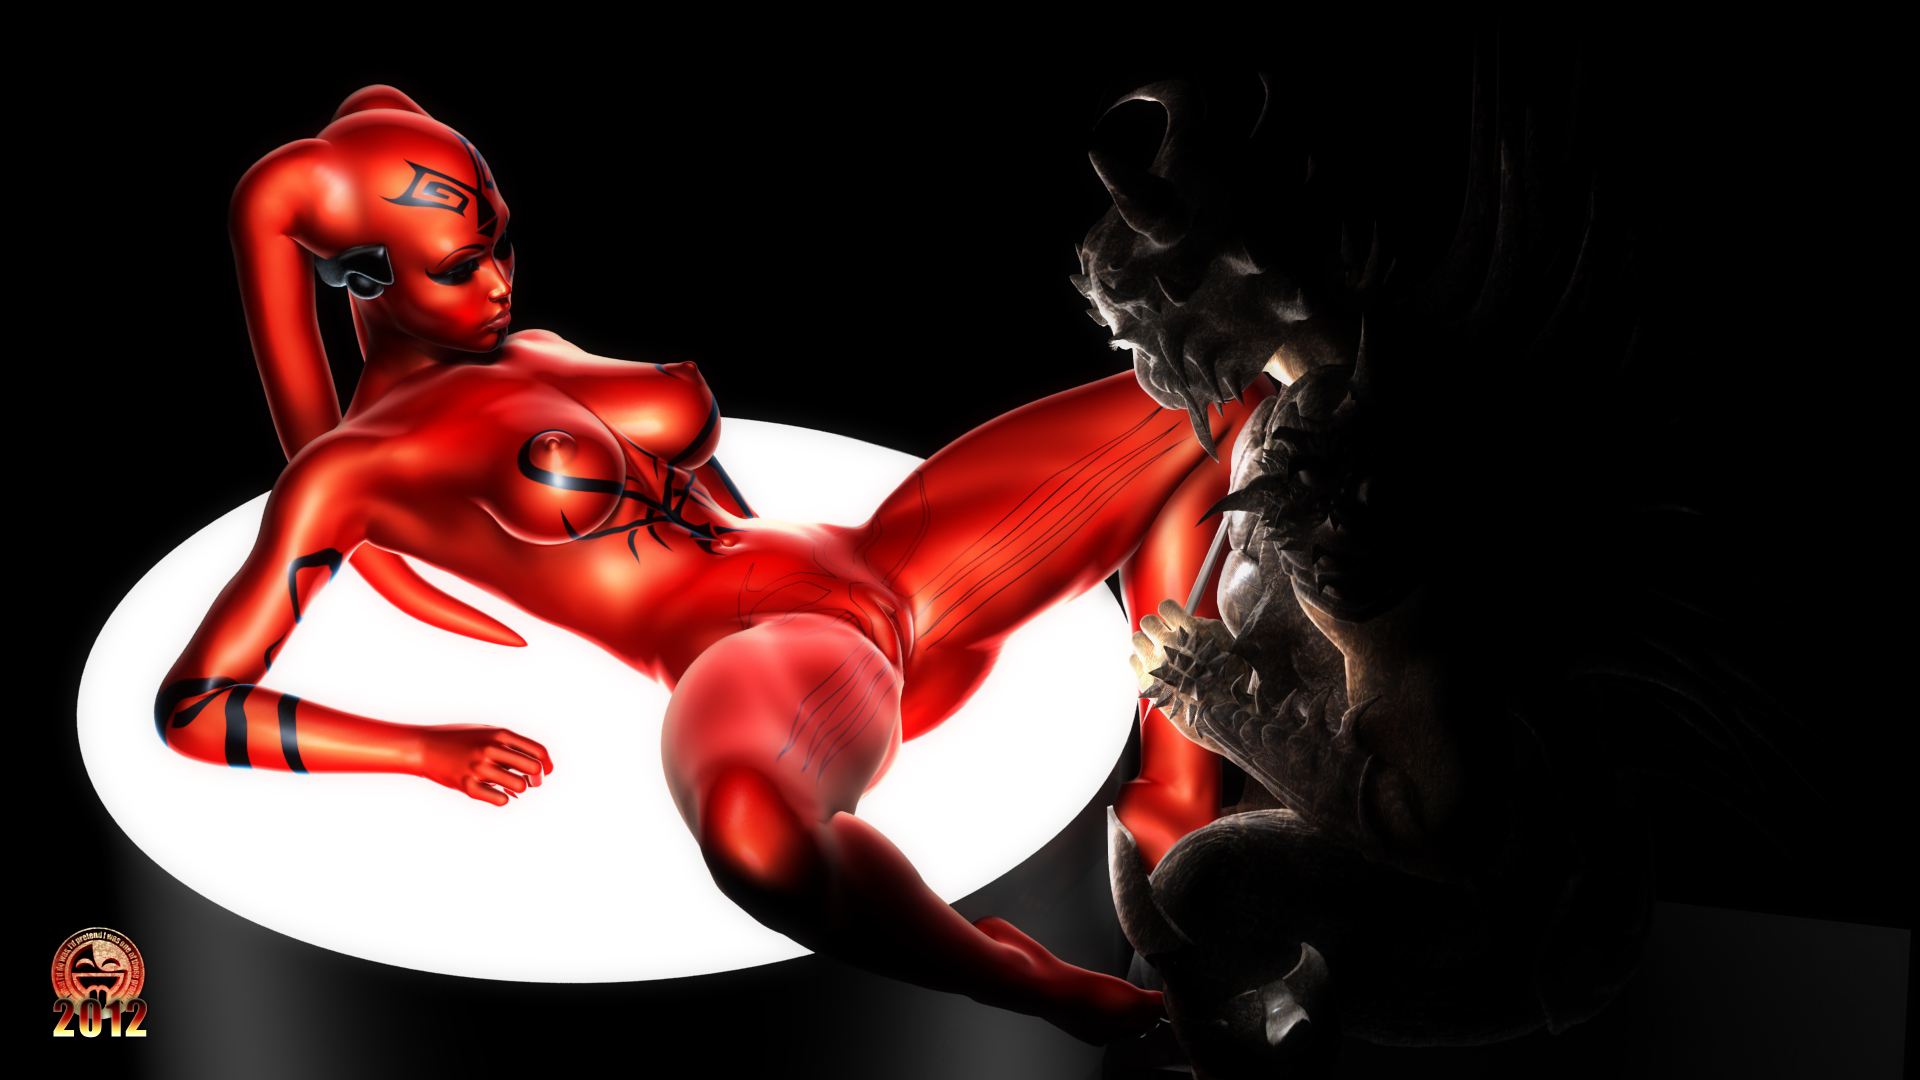 Fabulous Darth Talon prepped to girly-girl fuck-a-thon